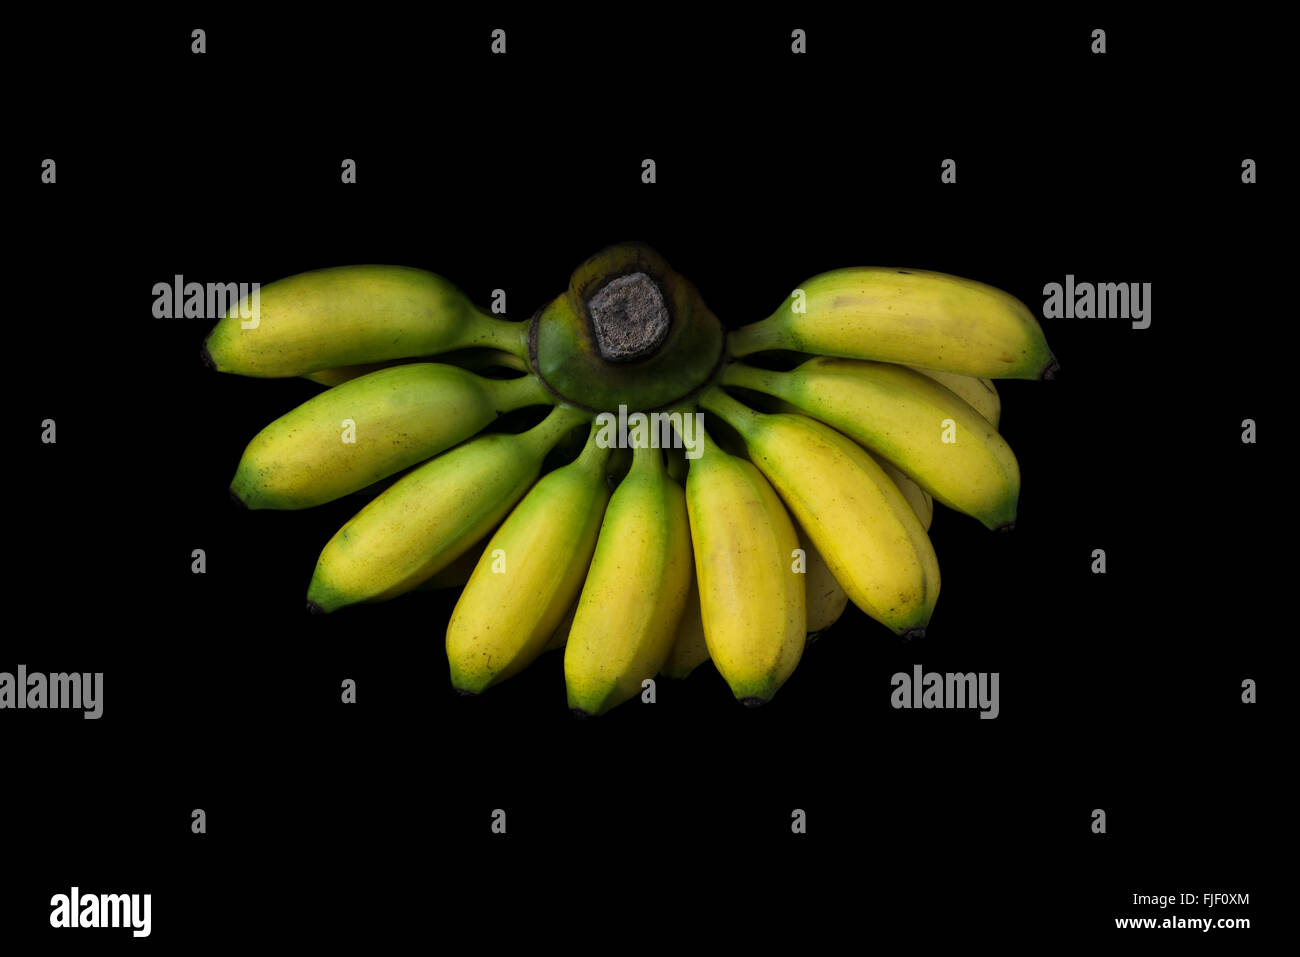 a kind of Thai banana isolated on black - Stock Image